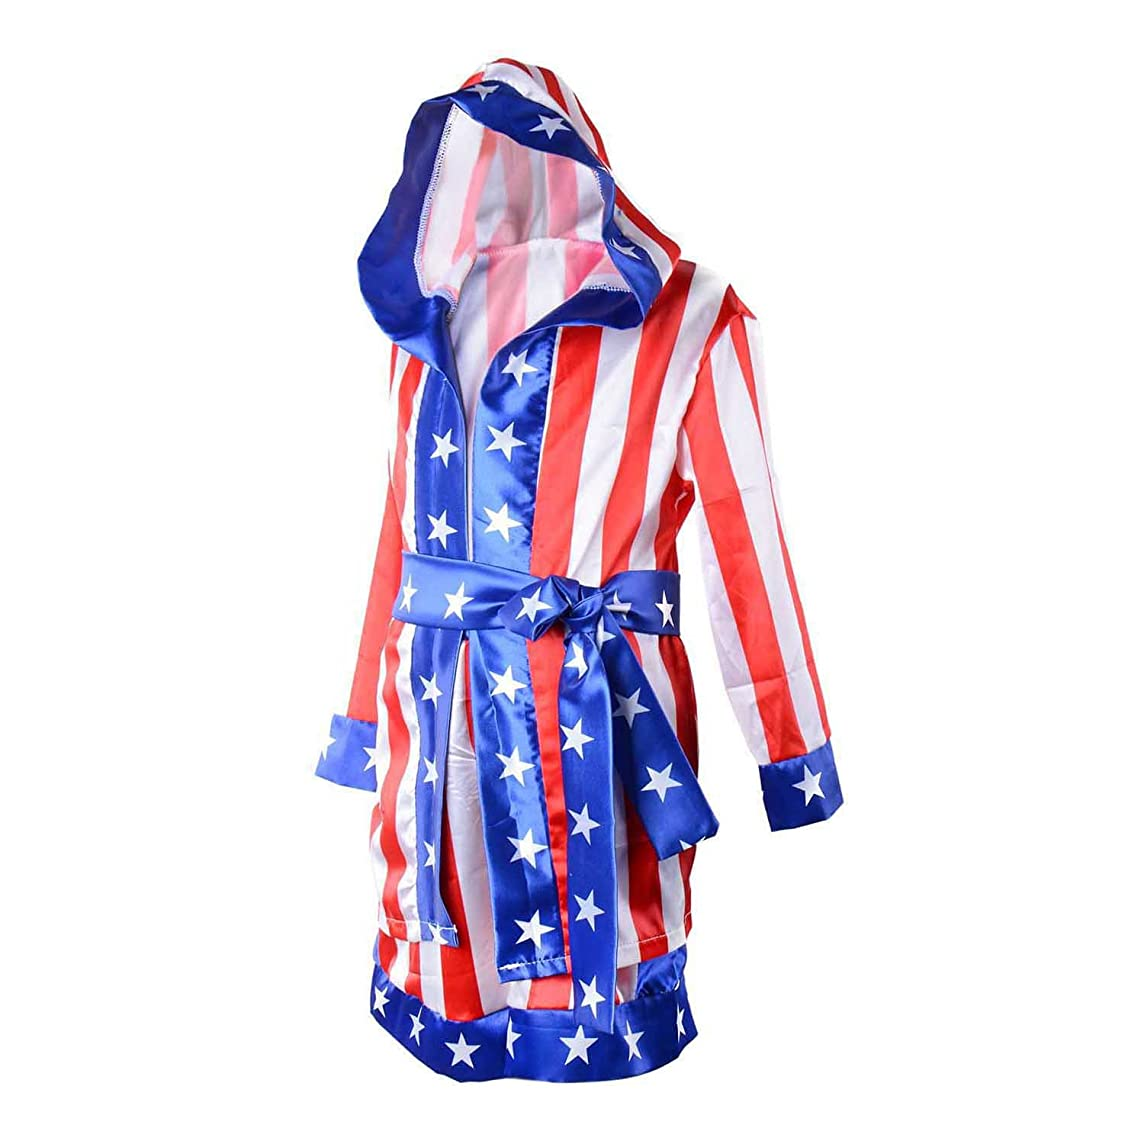 HUALIL Kids Rocky Balboa Apollo Boxing American Flag Robe Shorts Boy Movie Cosplay